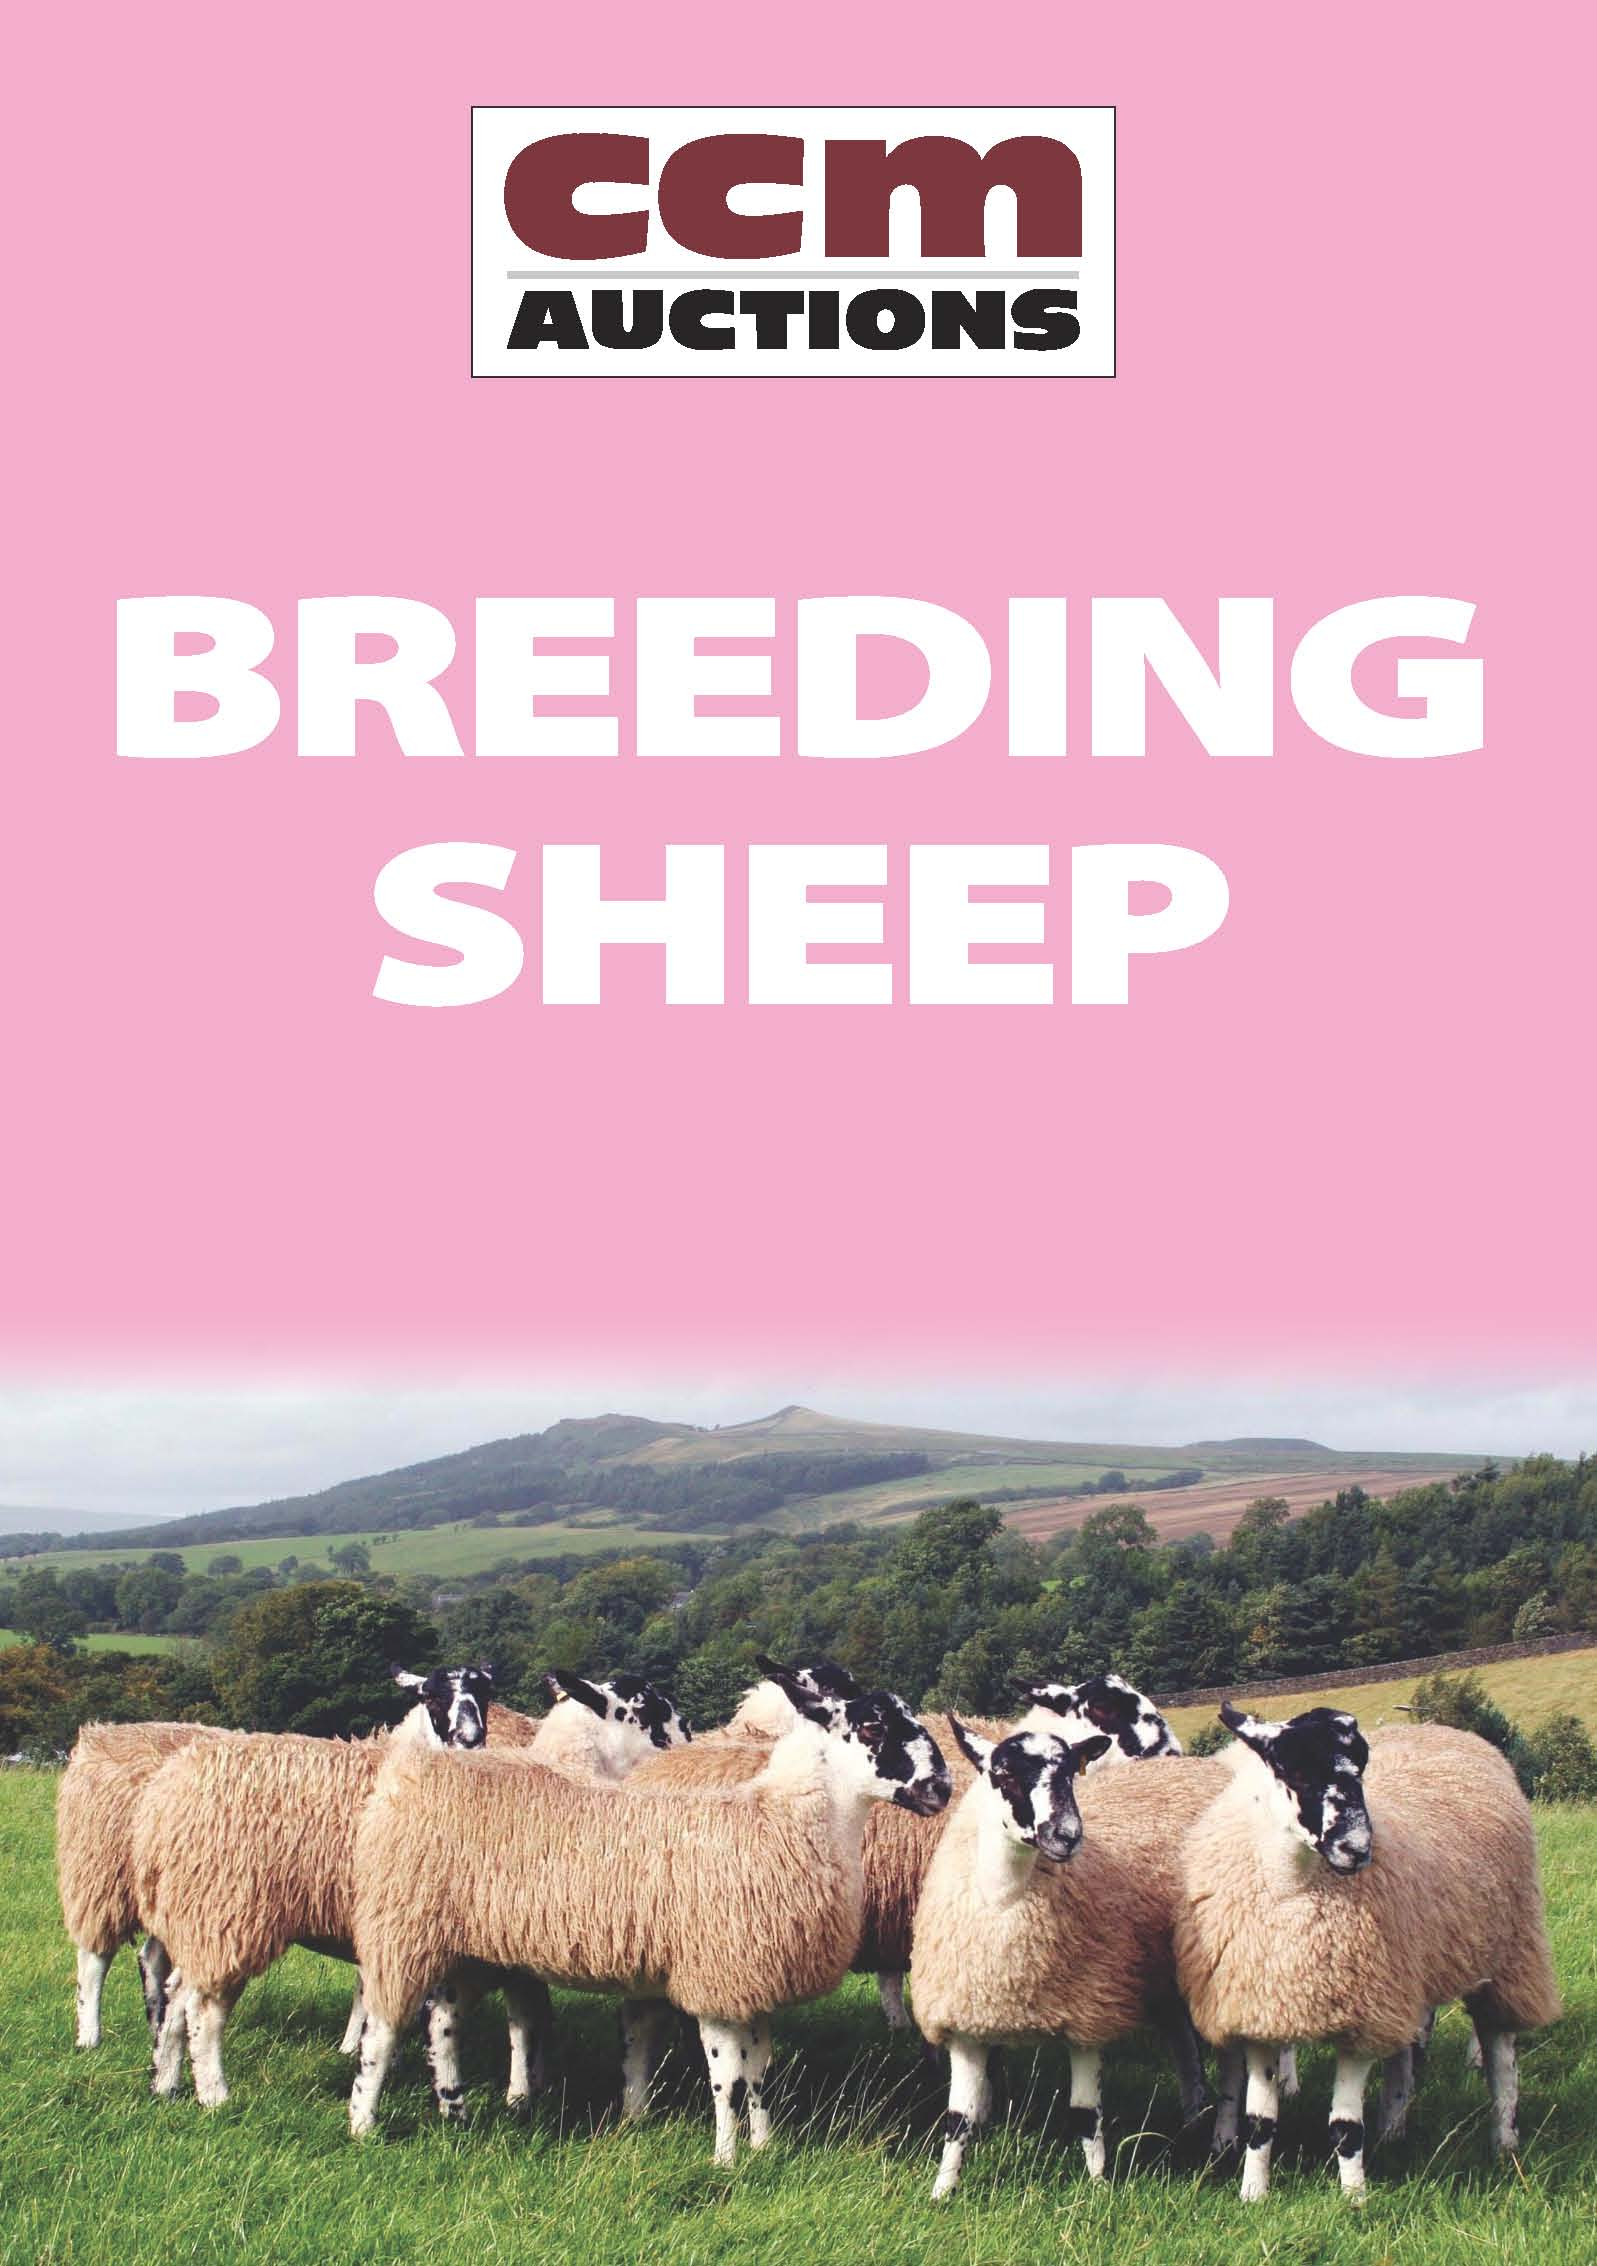 BREEDING SHEEP - MONDAY 11TH APRIL 2016